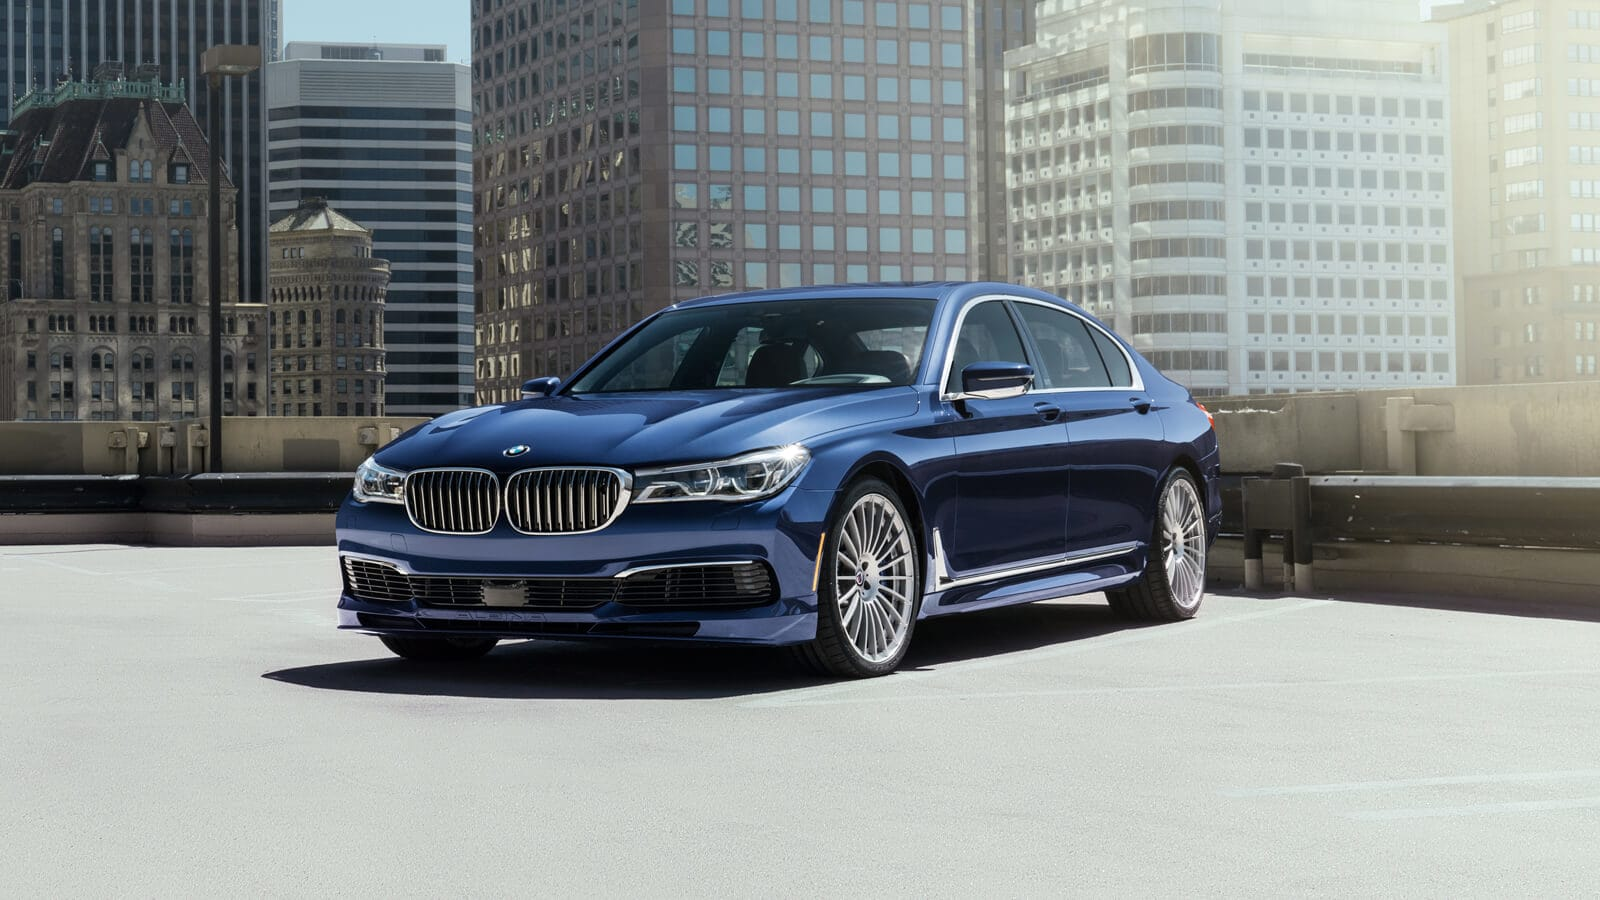 2019 BMW 7 Series for Sale near Gary, IN